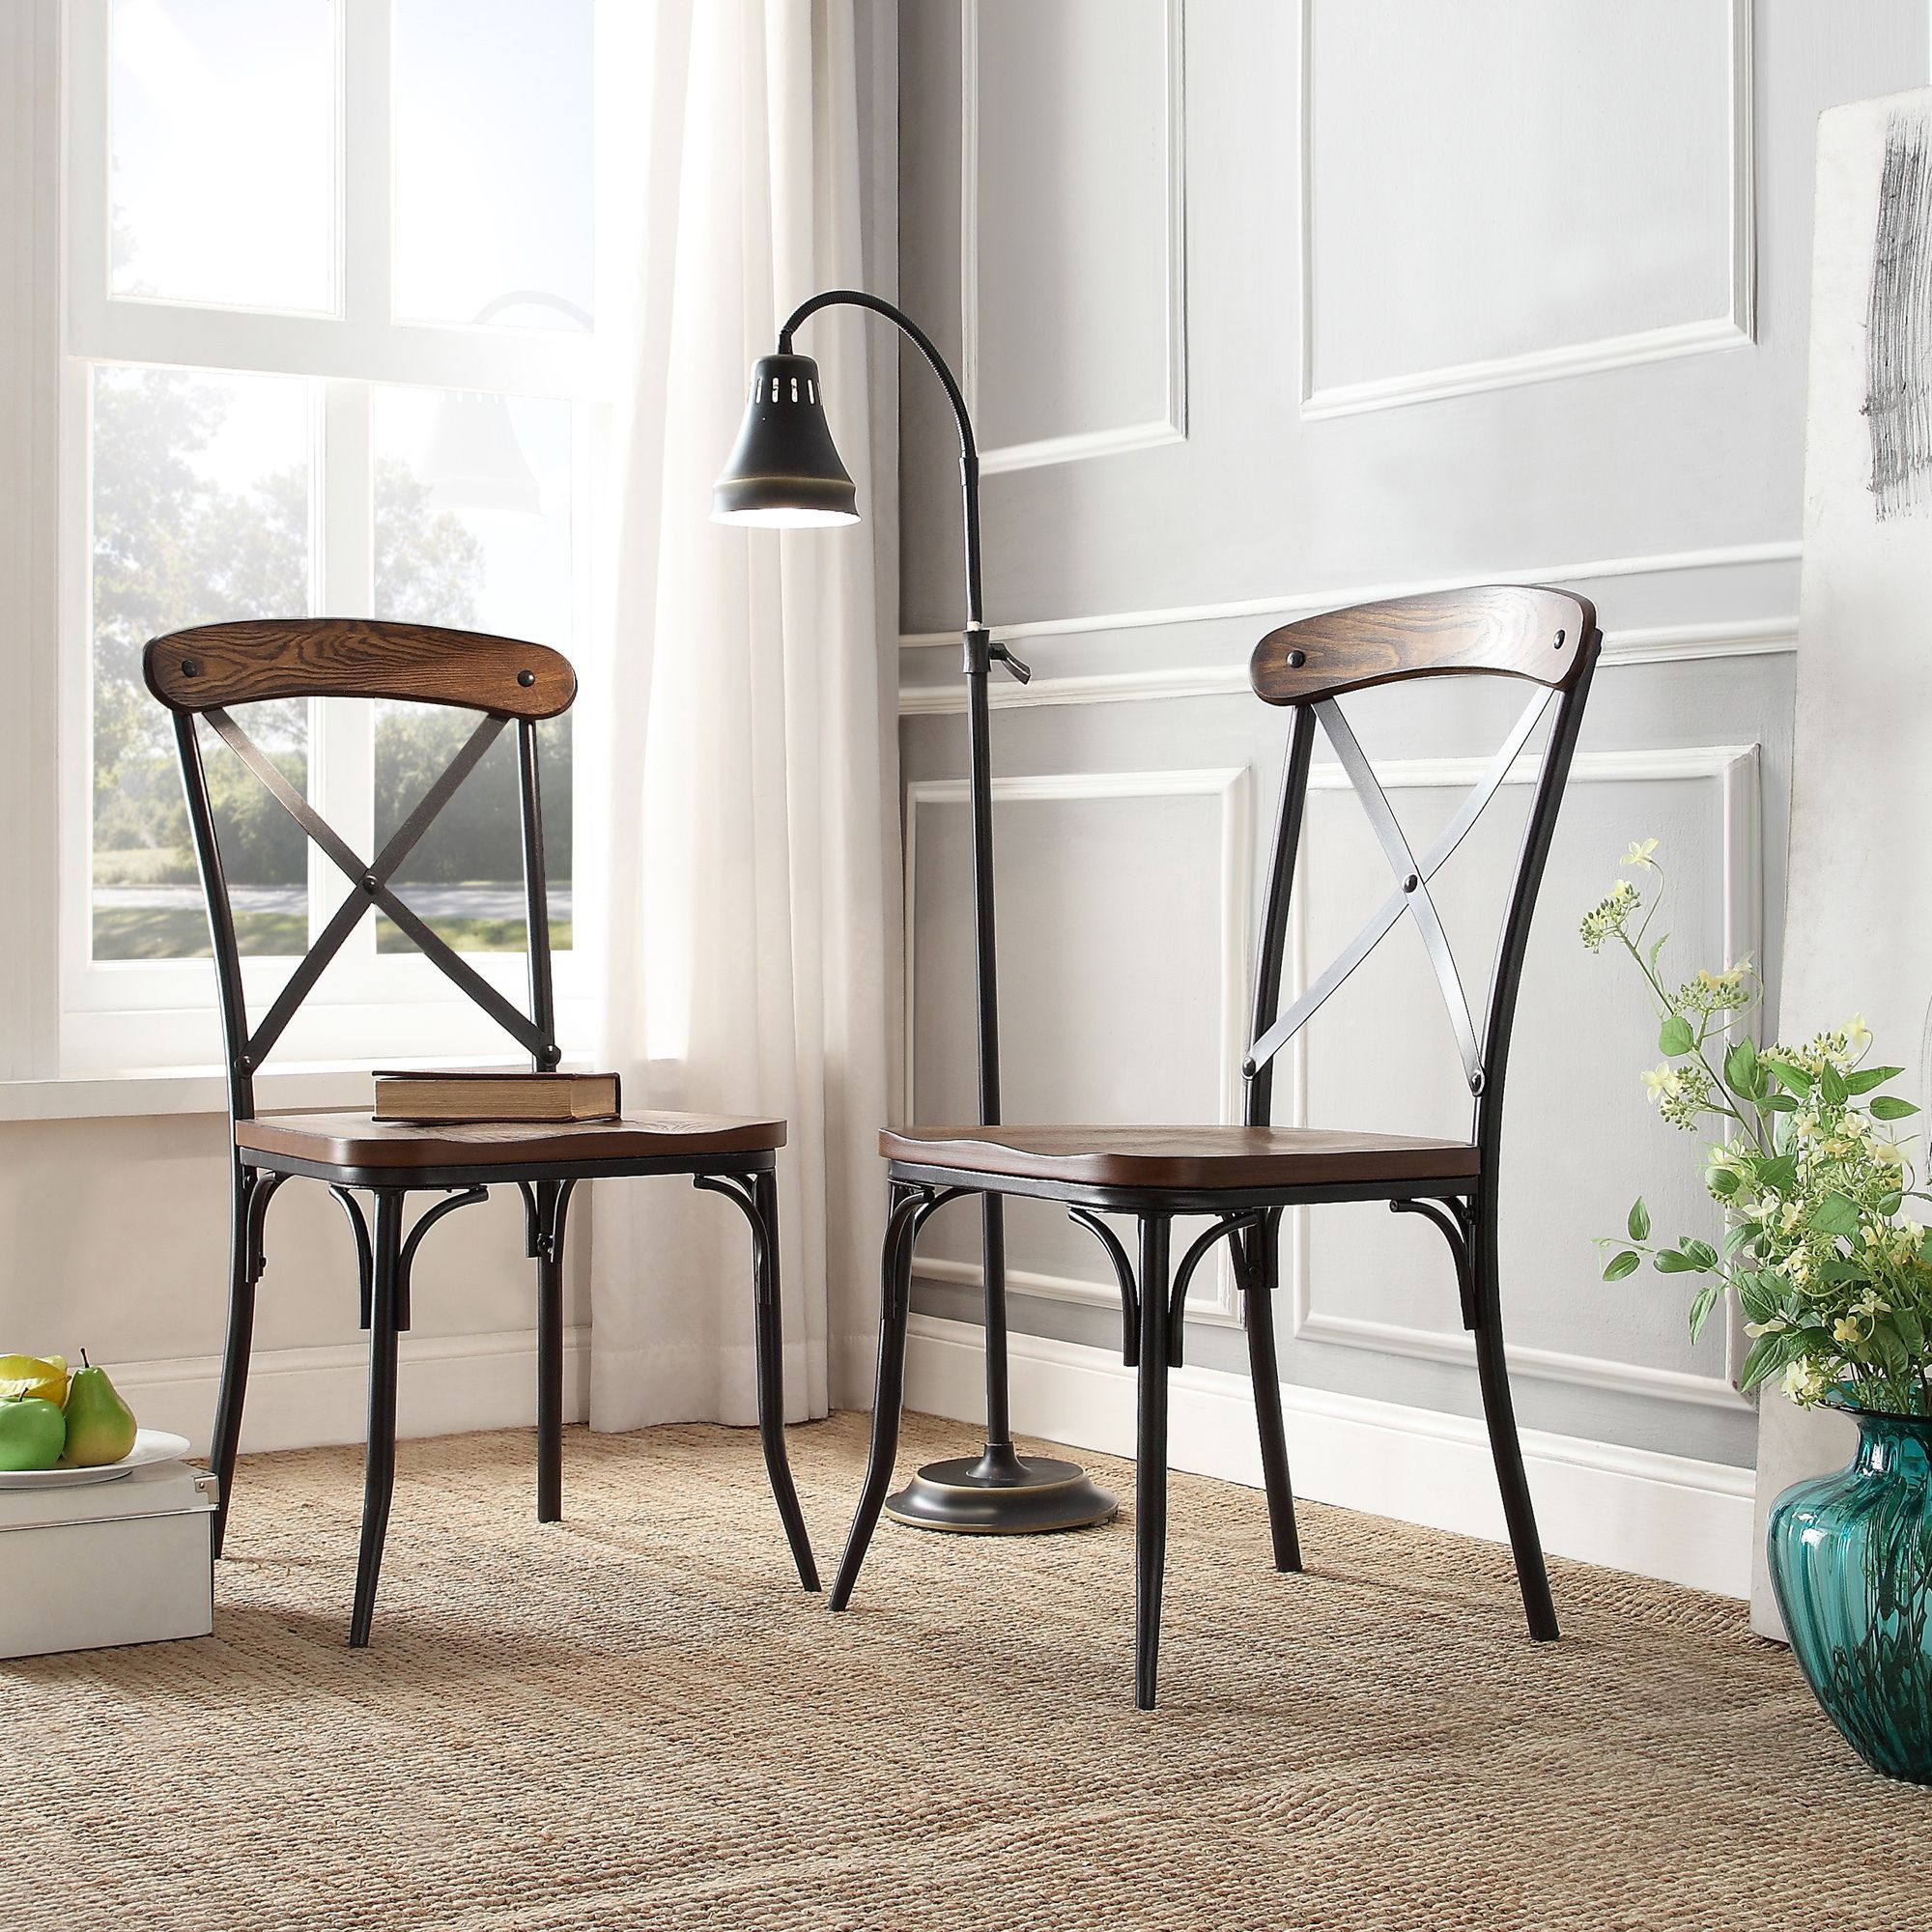 The Nelson Collection showcases on-trend style and function that ...